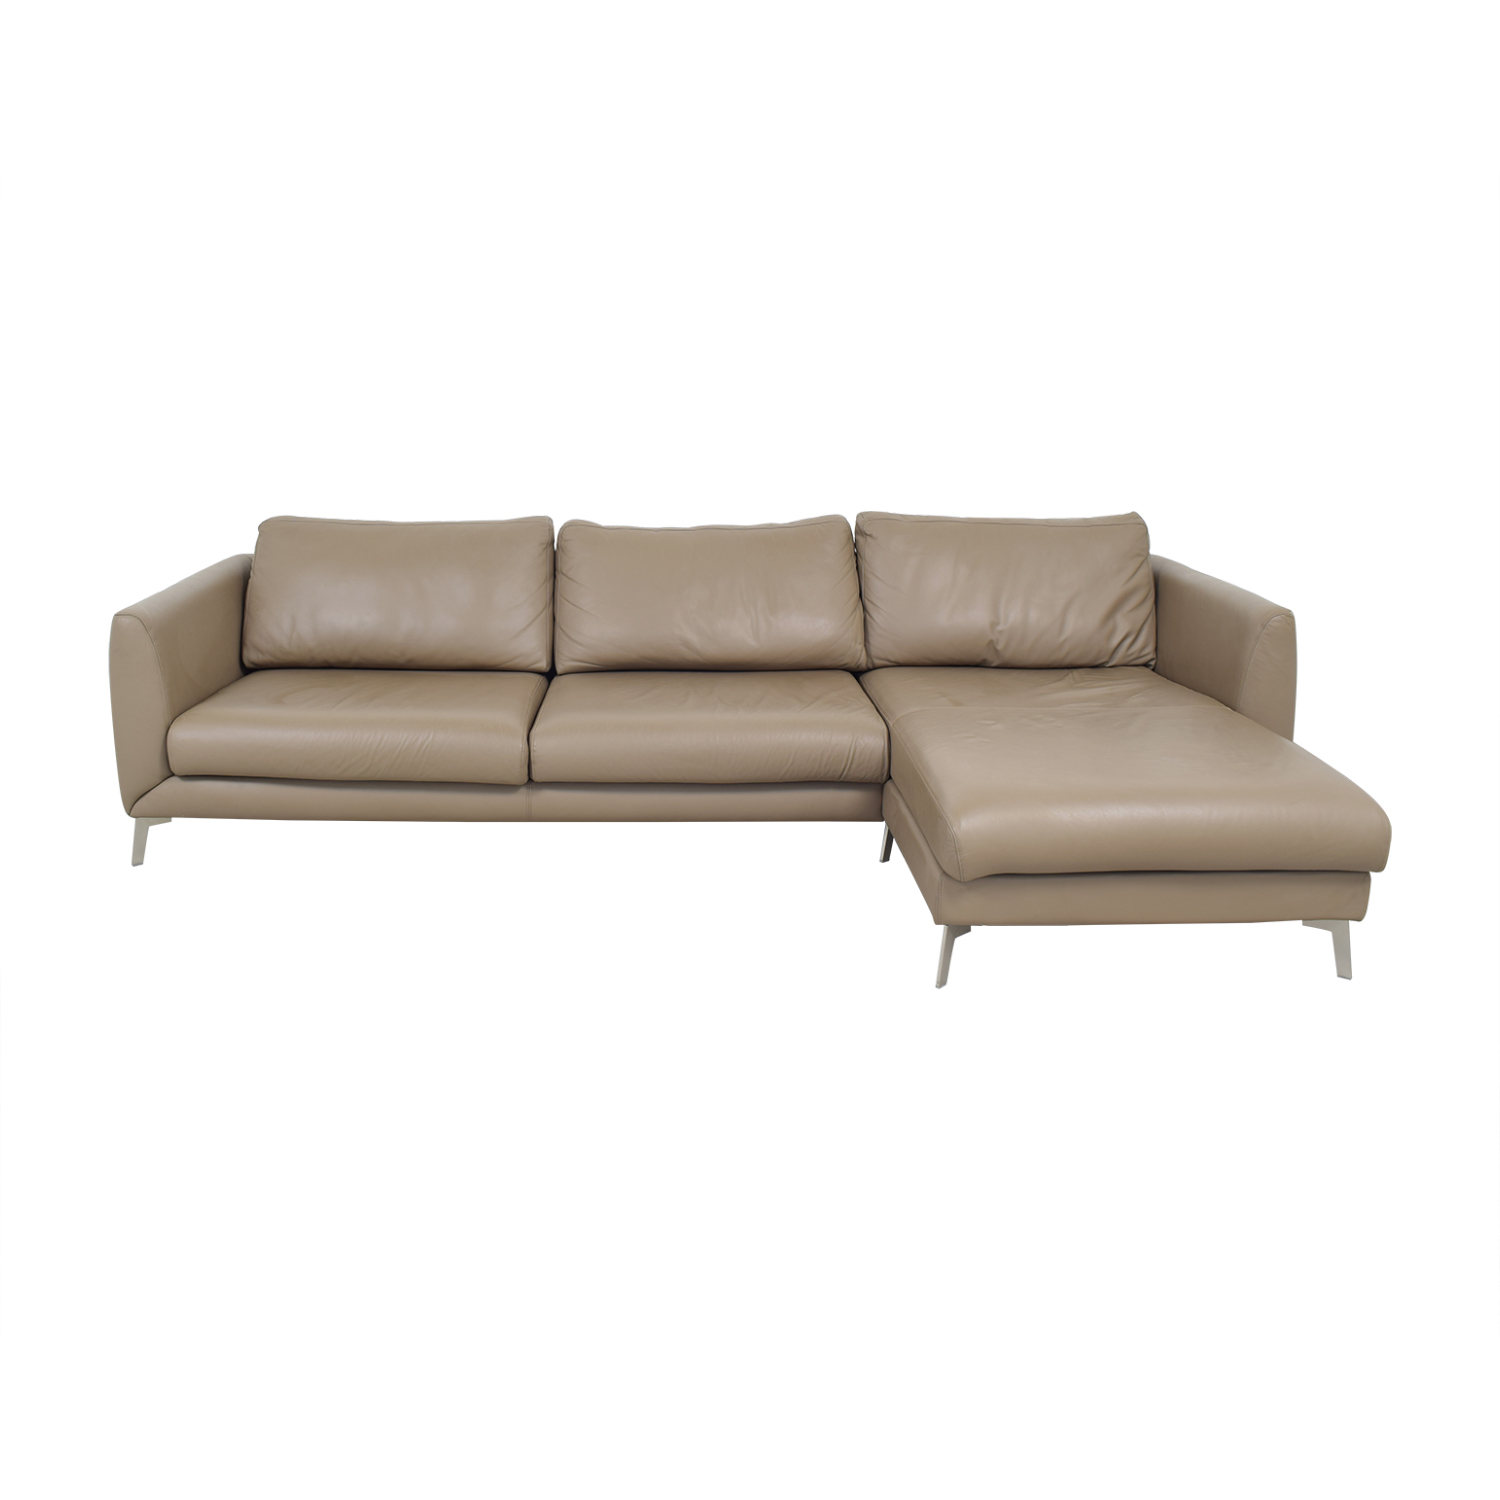 BoConcept BoConcept Fargo Sofa with Resting Unit discount